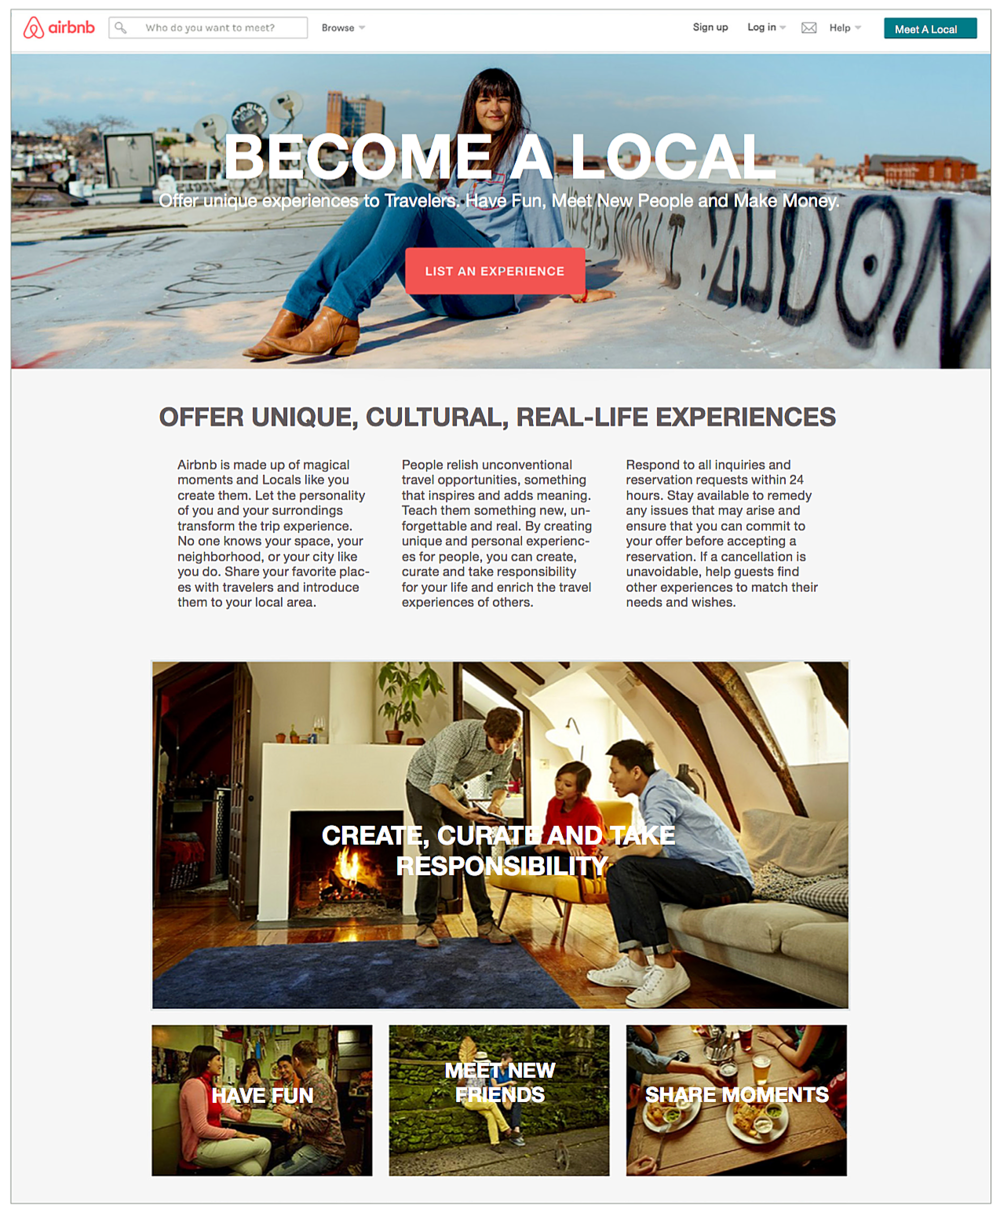 become-a-local---x----1274-1544x---.png